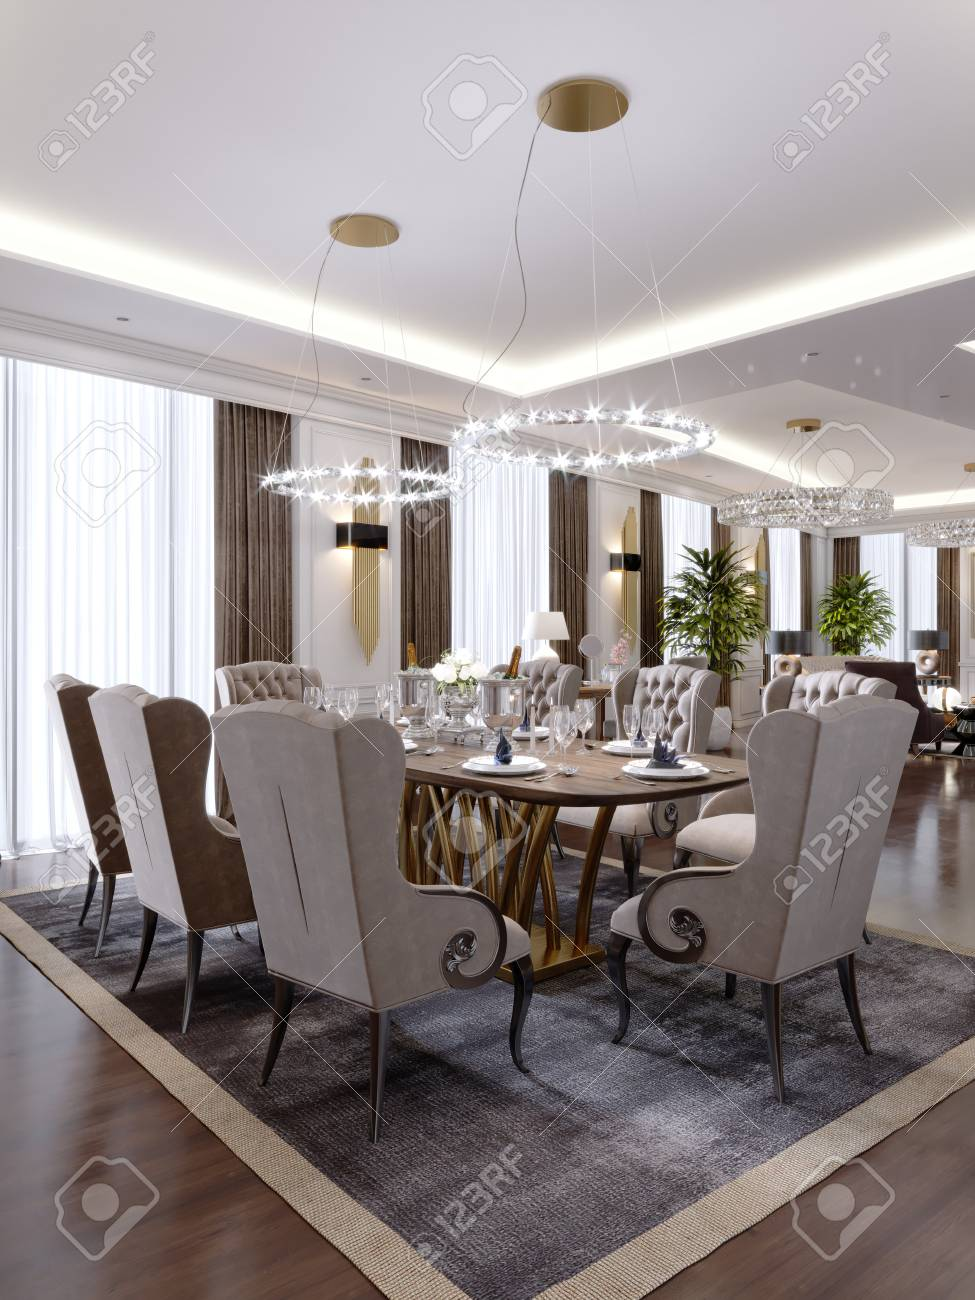 Luxurious Dining Room With A Large Table And Soft Chairs In A Stock Photo Picture And Royalty Free Image Image 113934739